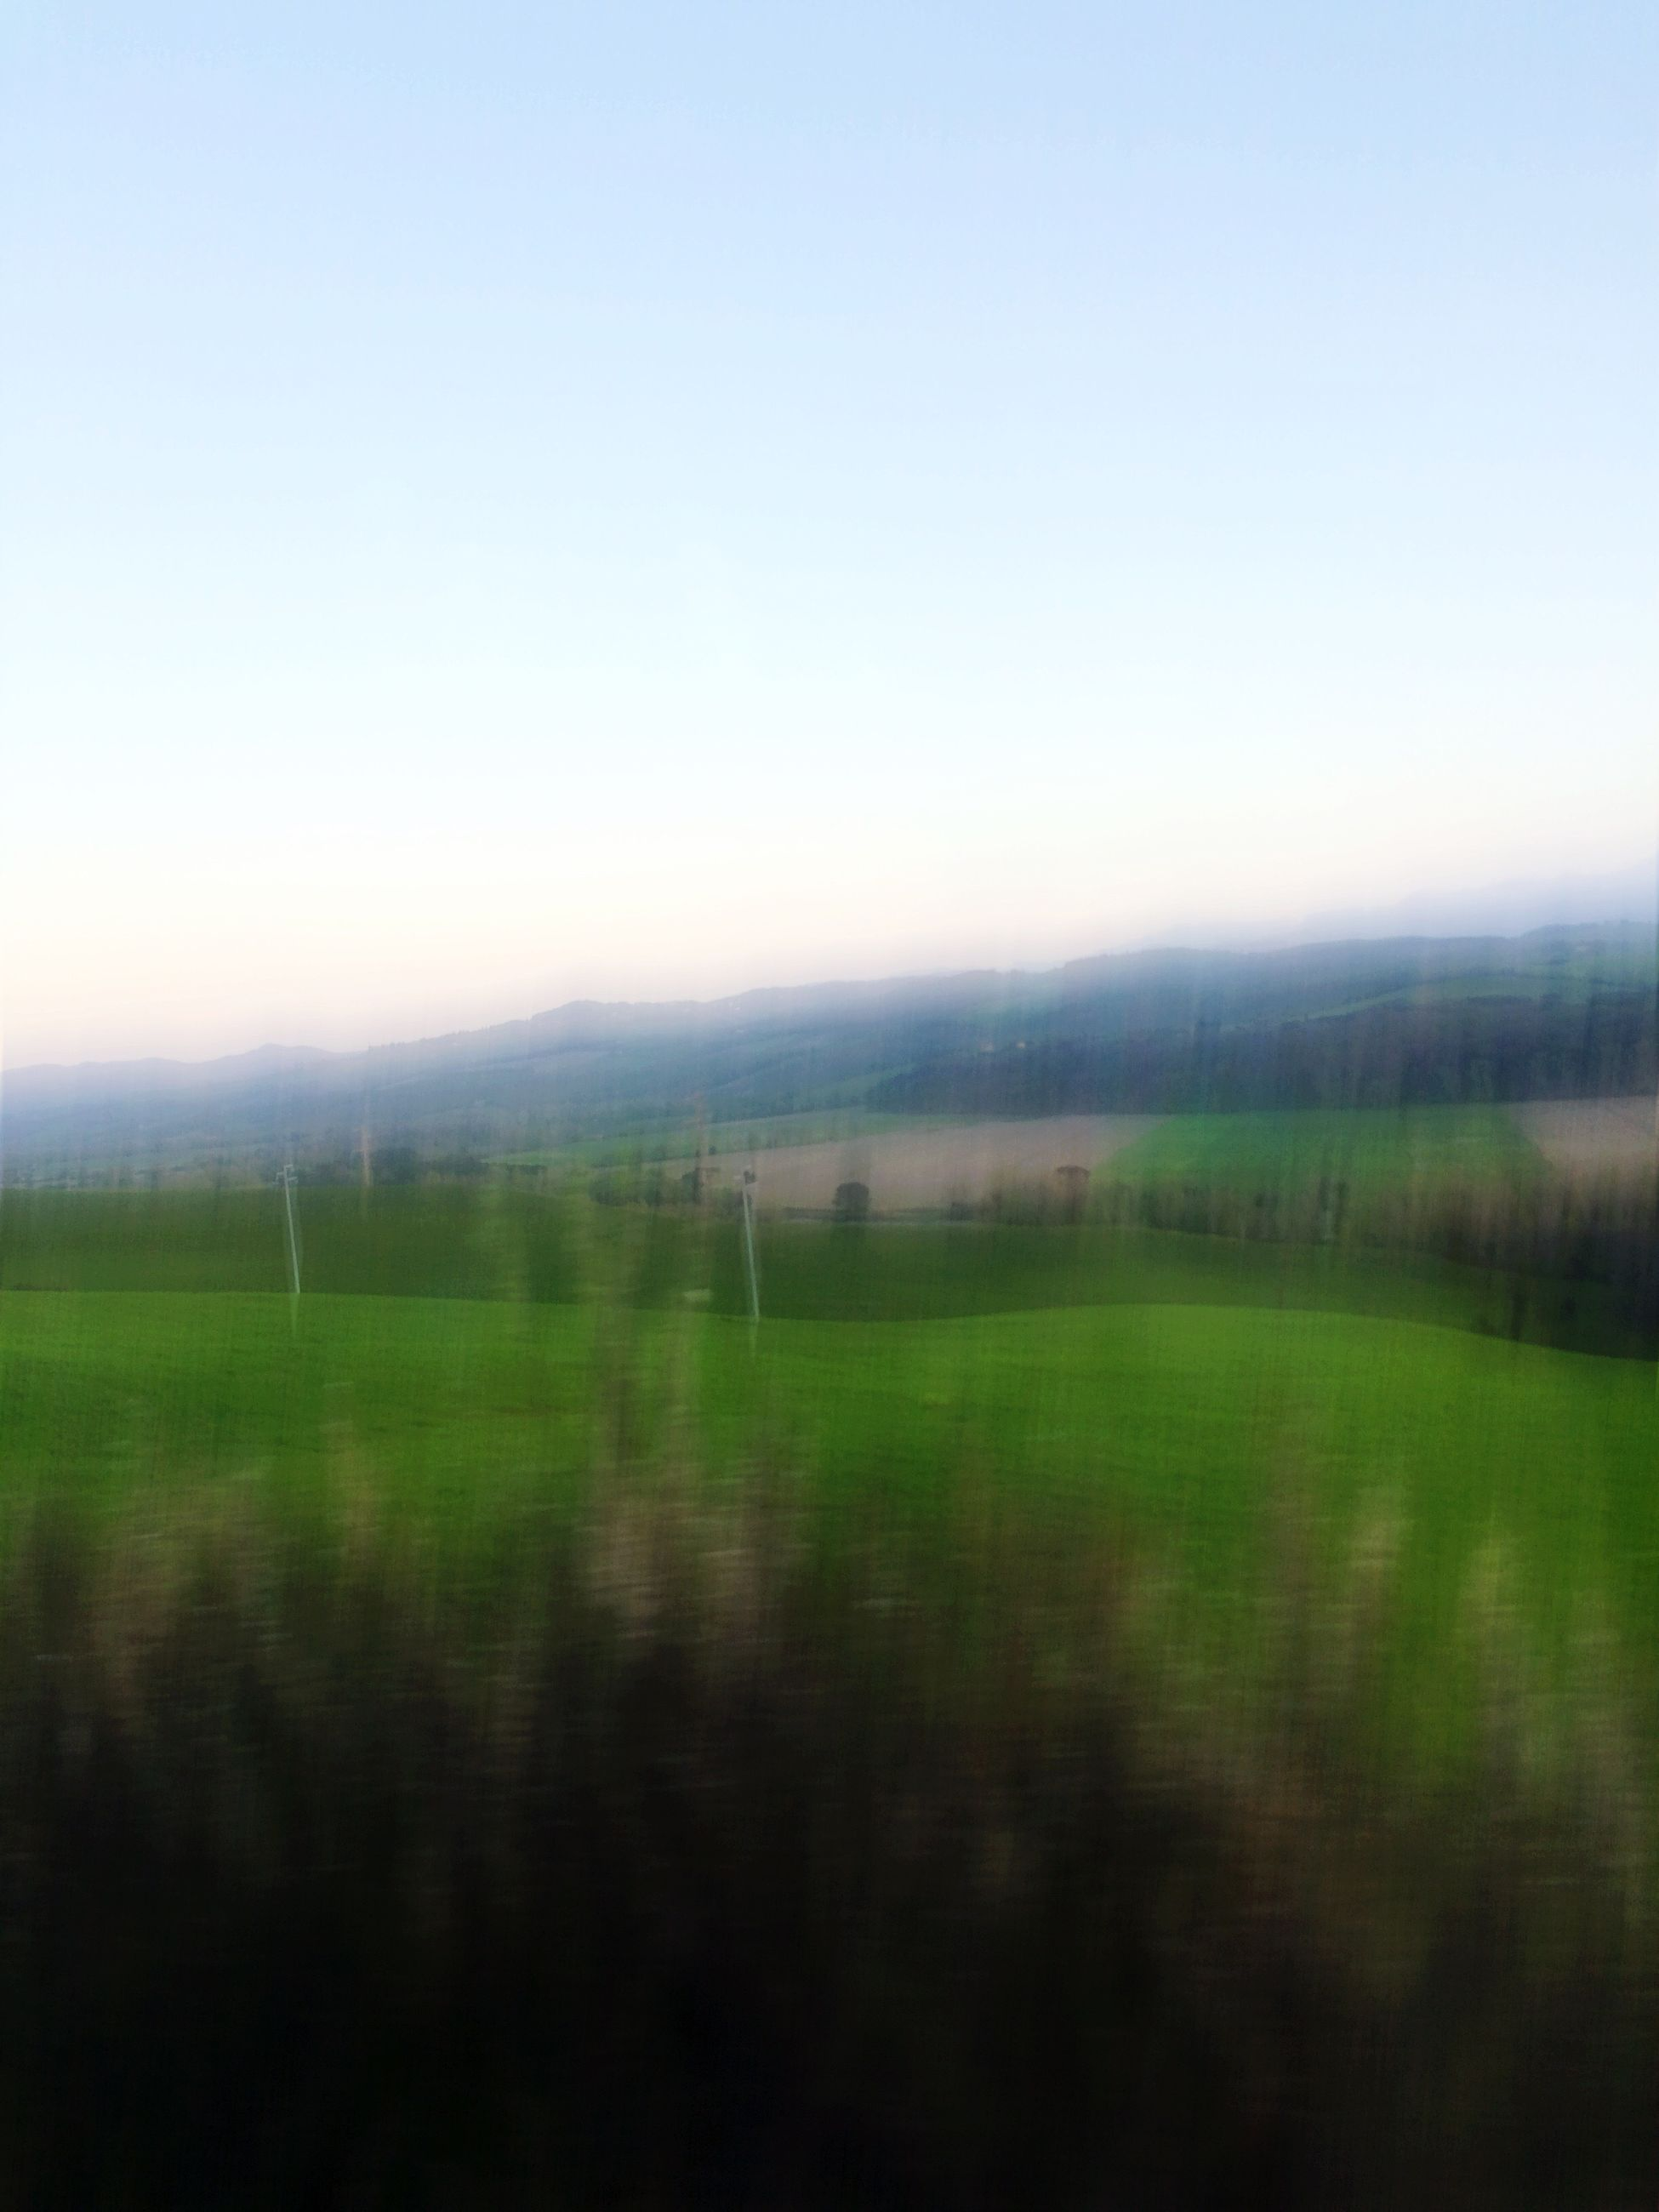 clear sky, copy space, landscape, tranquil scene, tranquility, field, scenics, beauty in nature, nature, grass, growth, idyllic, horizon over land, rural scene, foggy, no people, outdoors, non-urban scene, remote